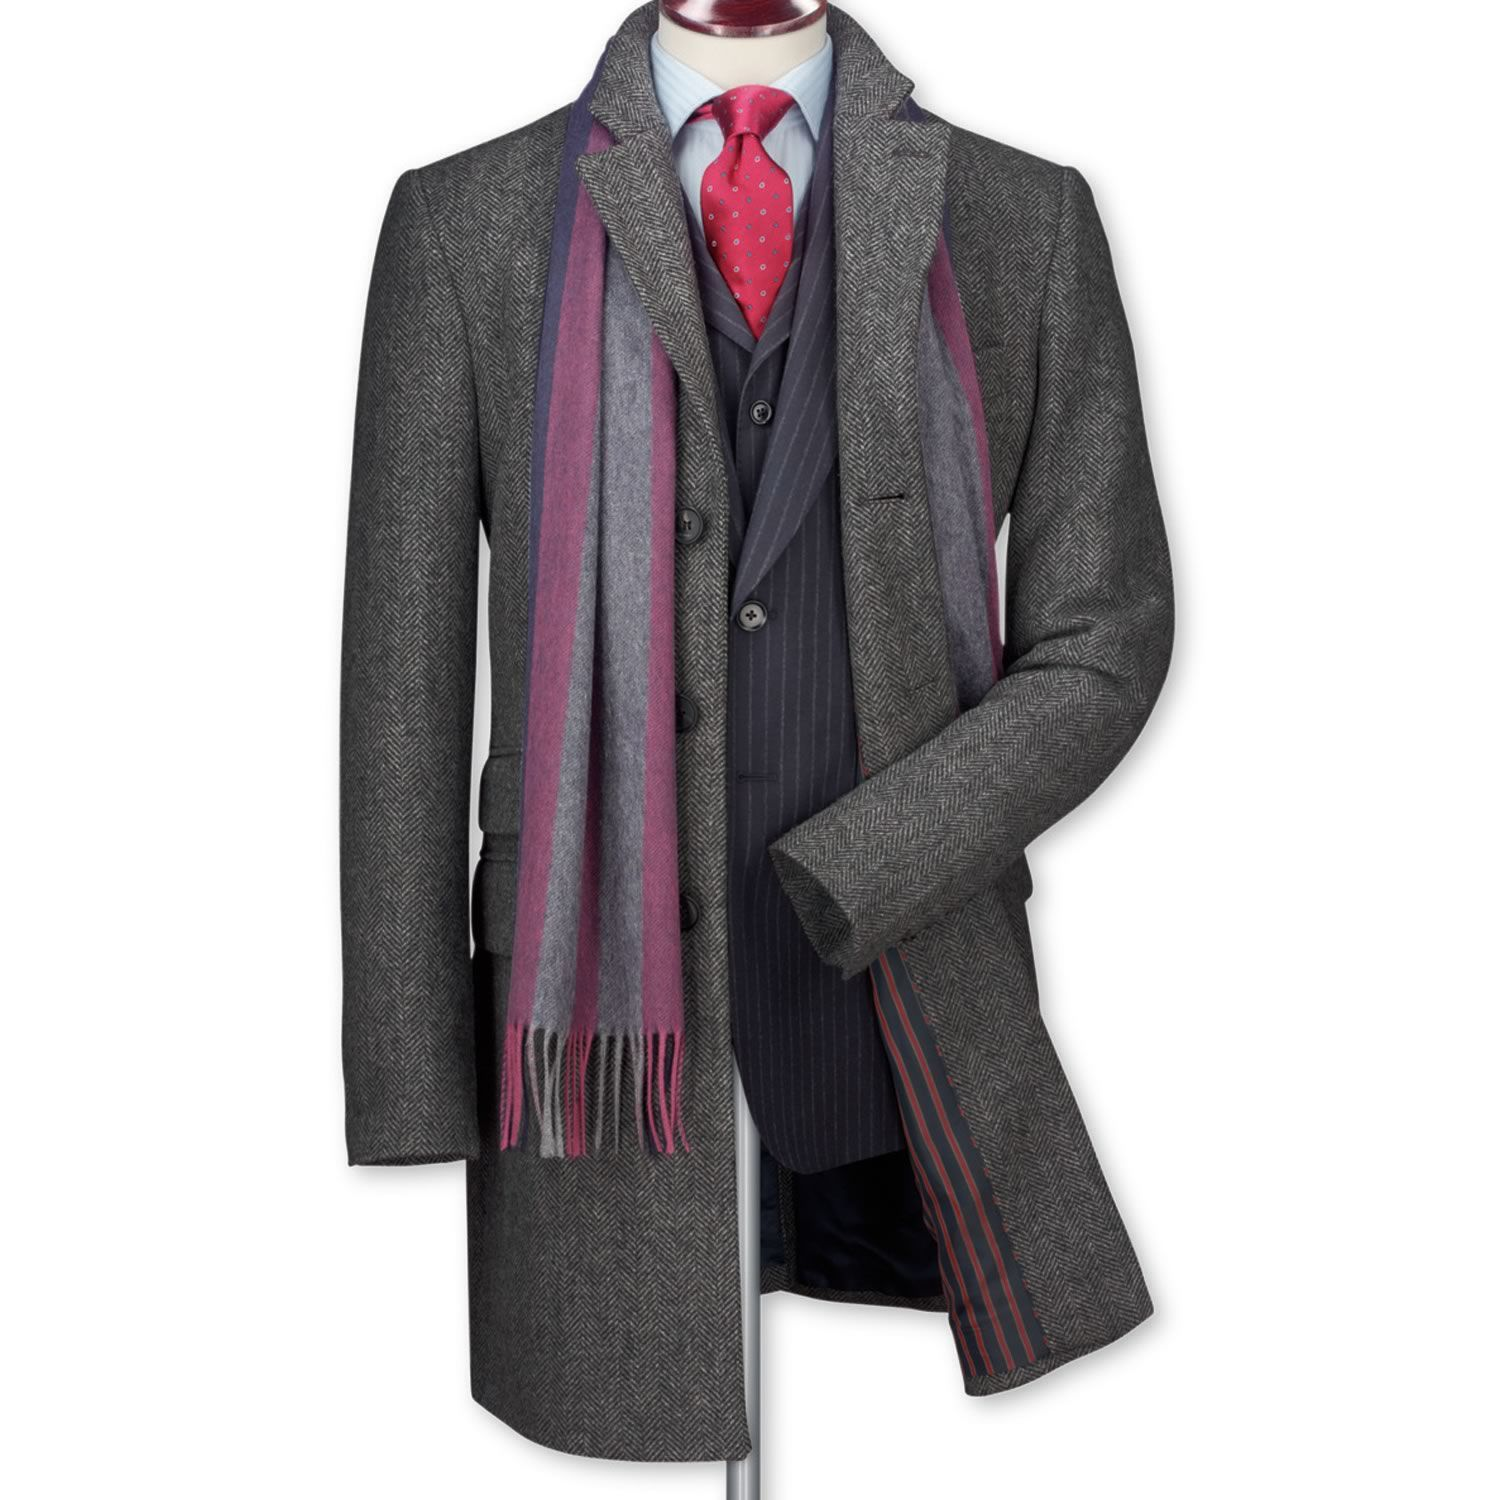 Grey herringbone tweed overcoat | Men's coats from Charles ...